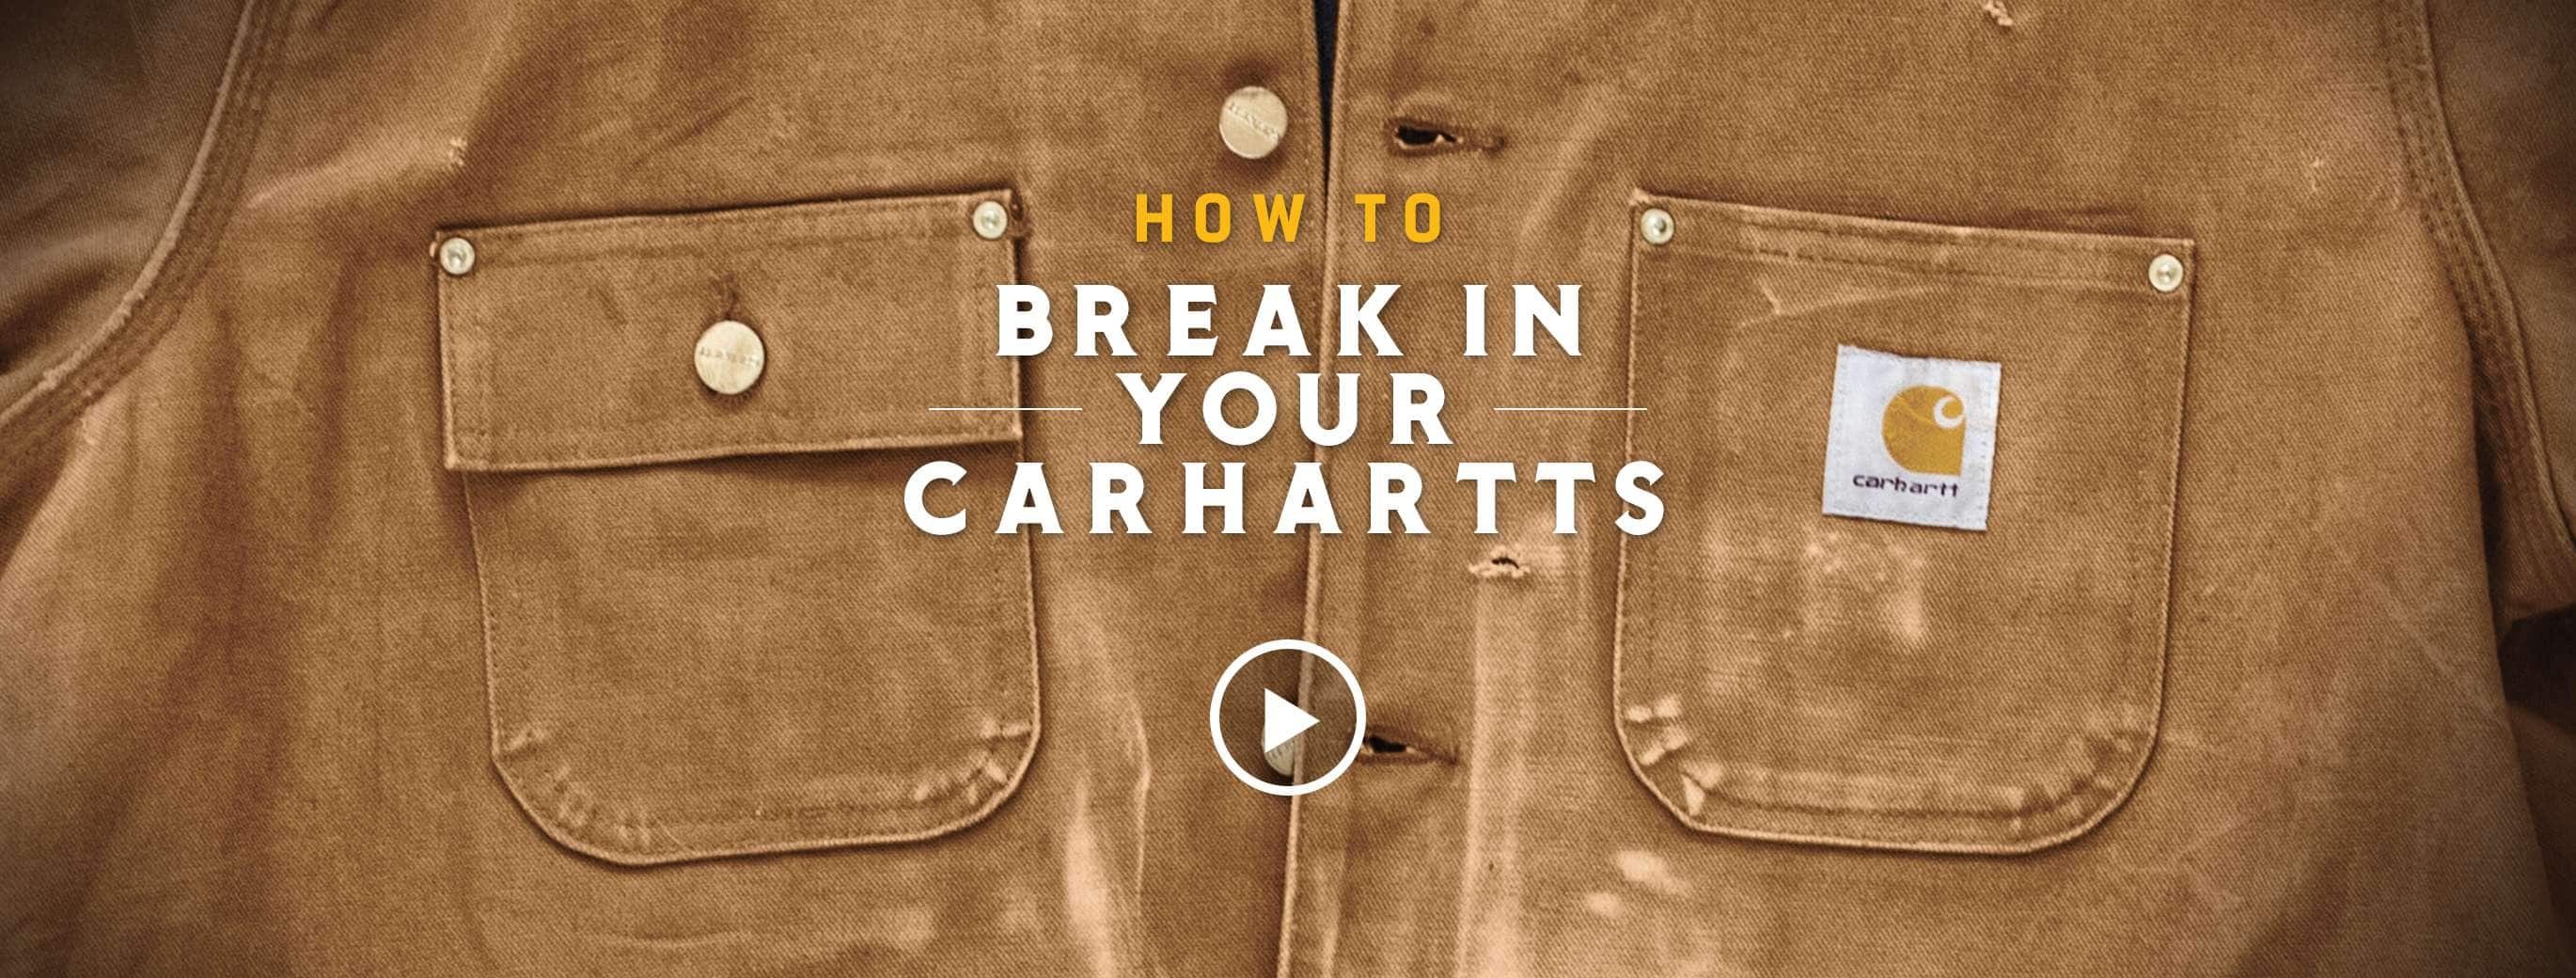 How To Break Into Your Carhartt